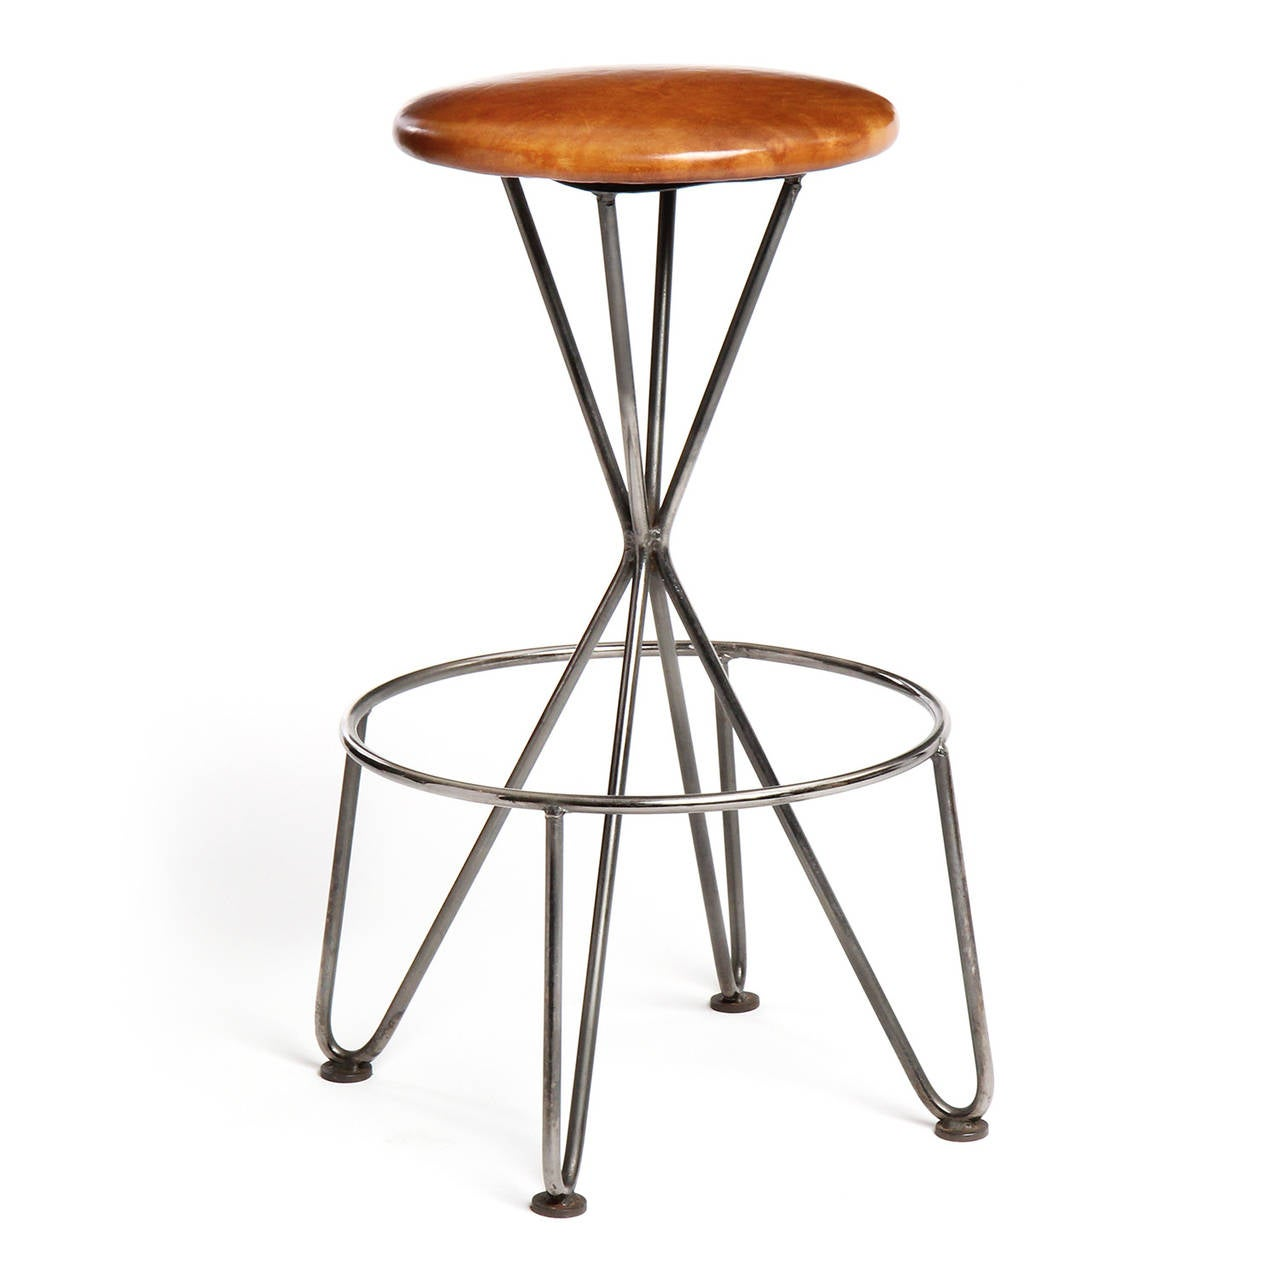 American Swiveling Steel and Leather Stool For Sale